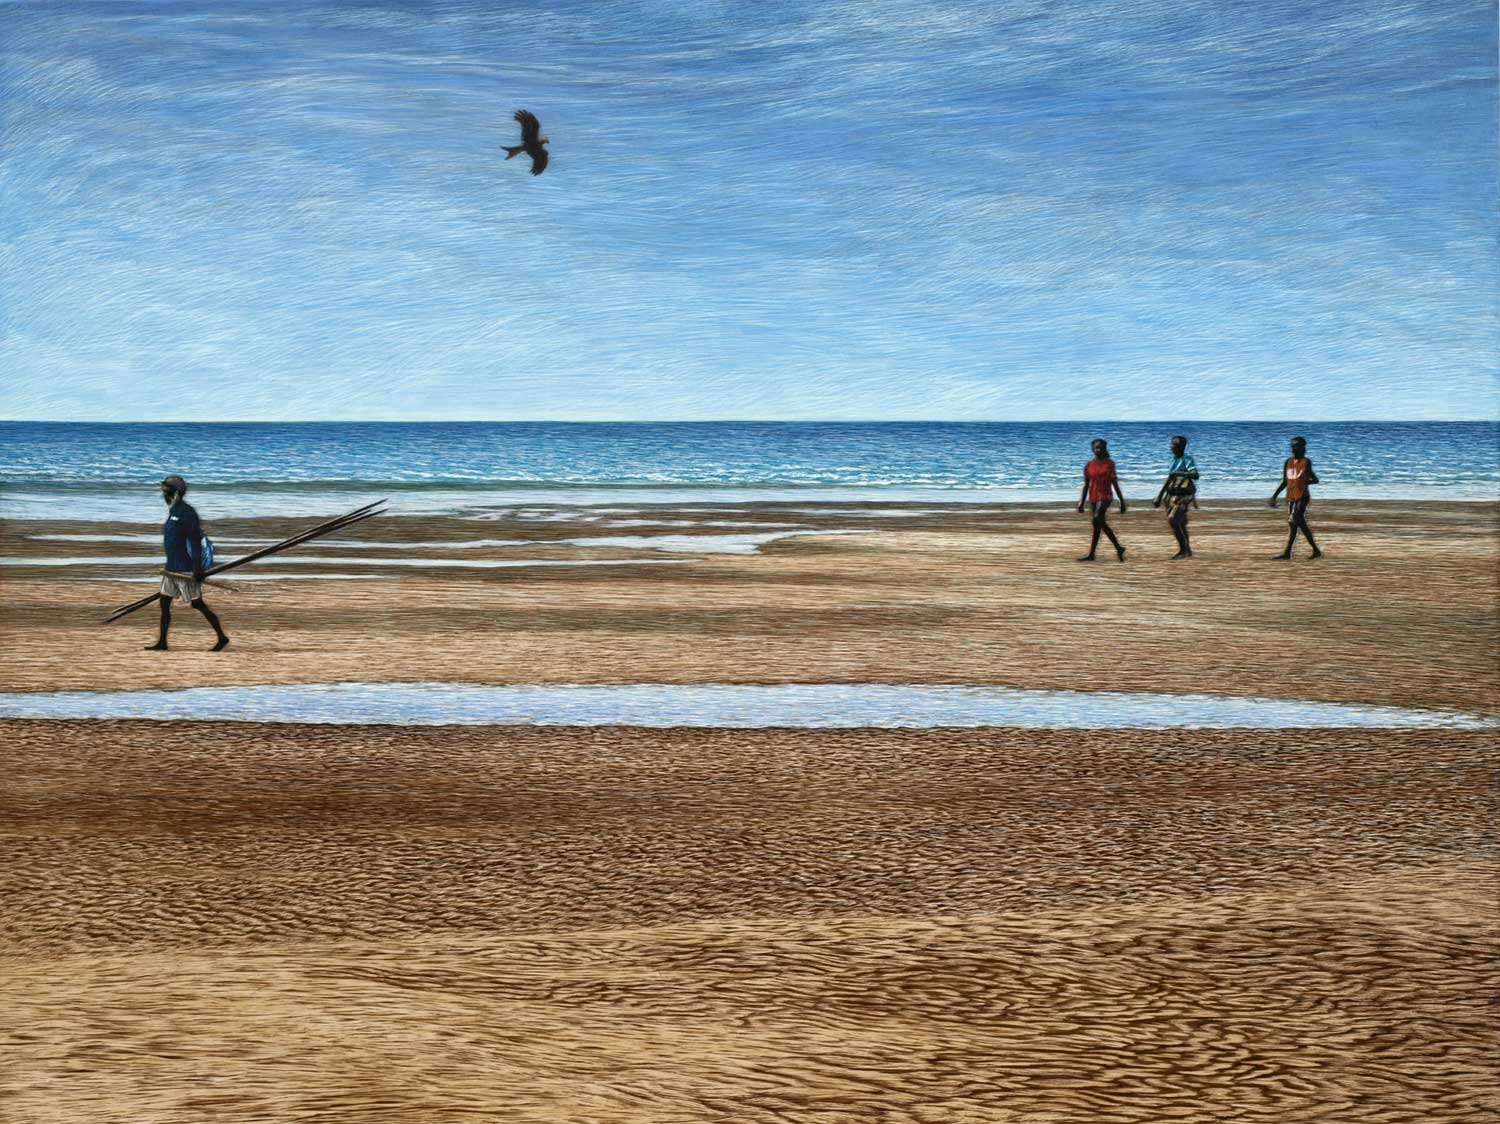 HEADING BACK BUFFALO CREEK BEACH, DARWIN  45.5 X 61 CM,  EDITION OF 50  PIGMENT ON COTTON RAG PAPER  $1,100